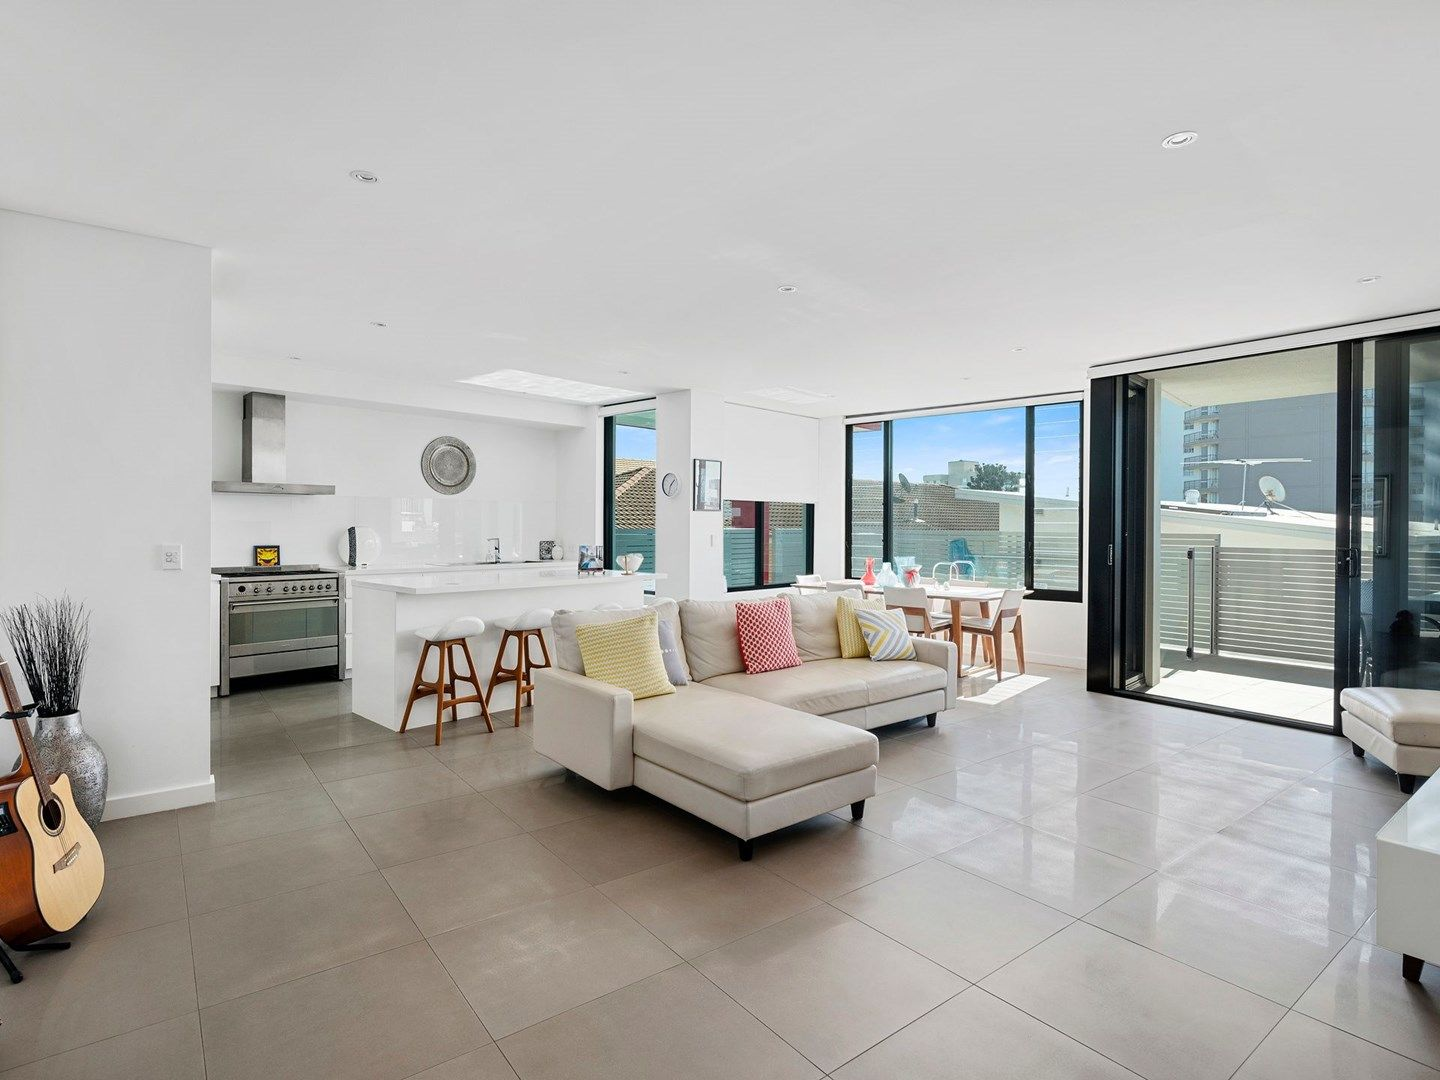 1/3 Boundary Lane, Tweed Heads NSW 2485 - Apartment For Sale | Domain